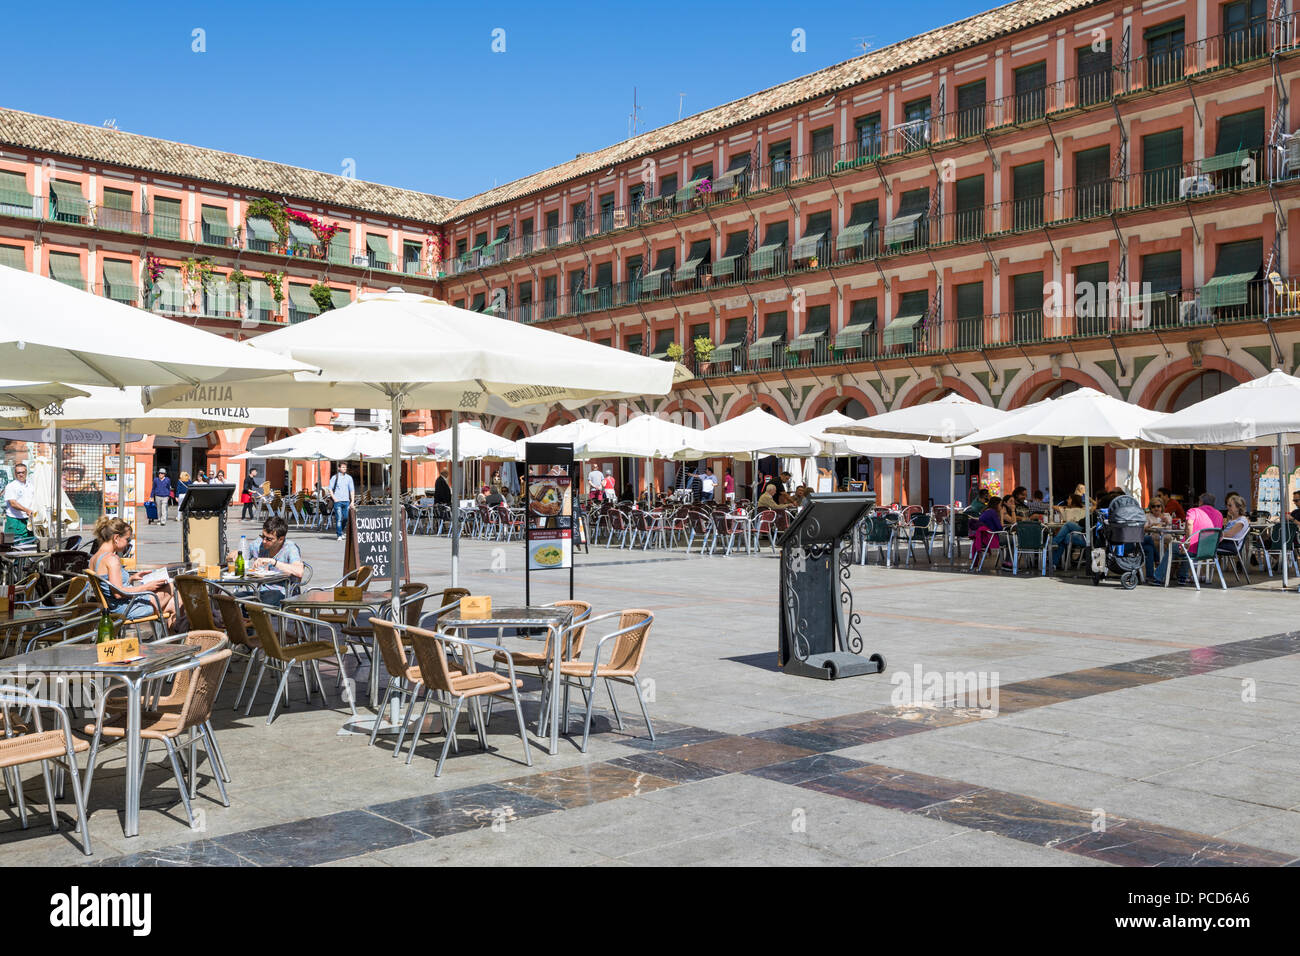 Cafes and restaurants in the Plaza de la Corredera, Cordoba, Andalucia, Spain, Europe - Stock Image